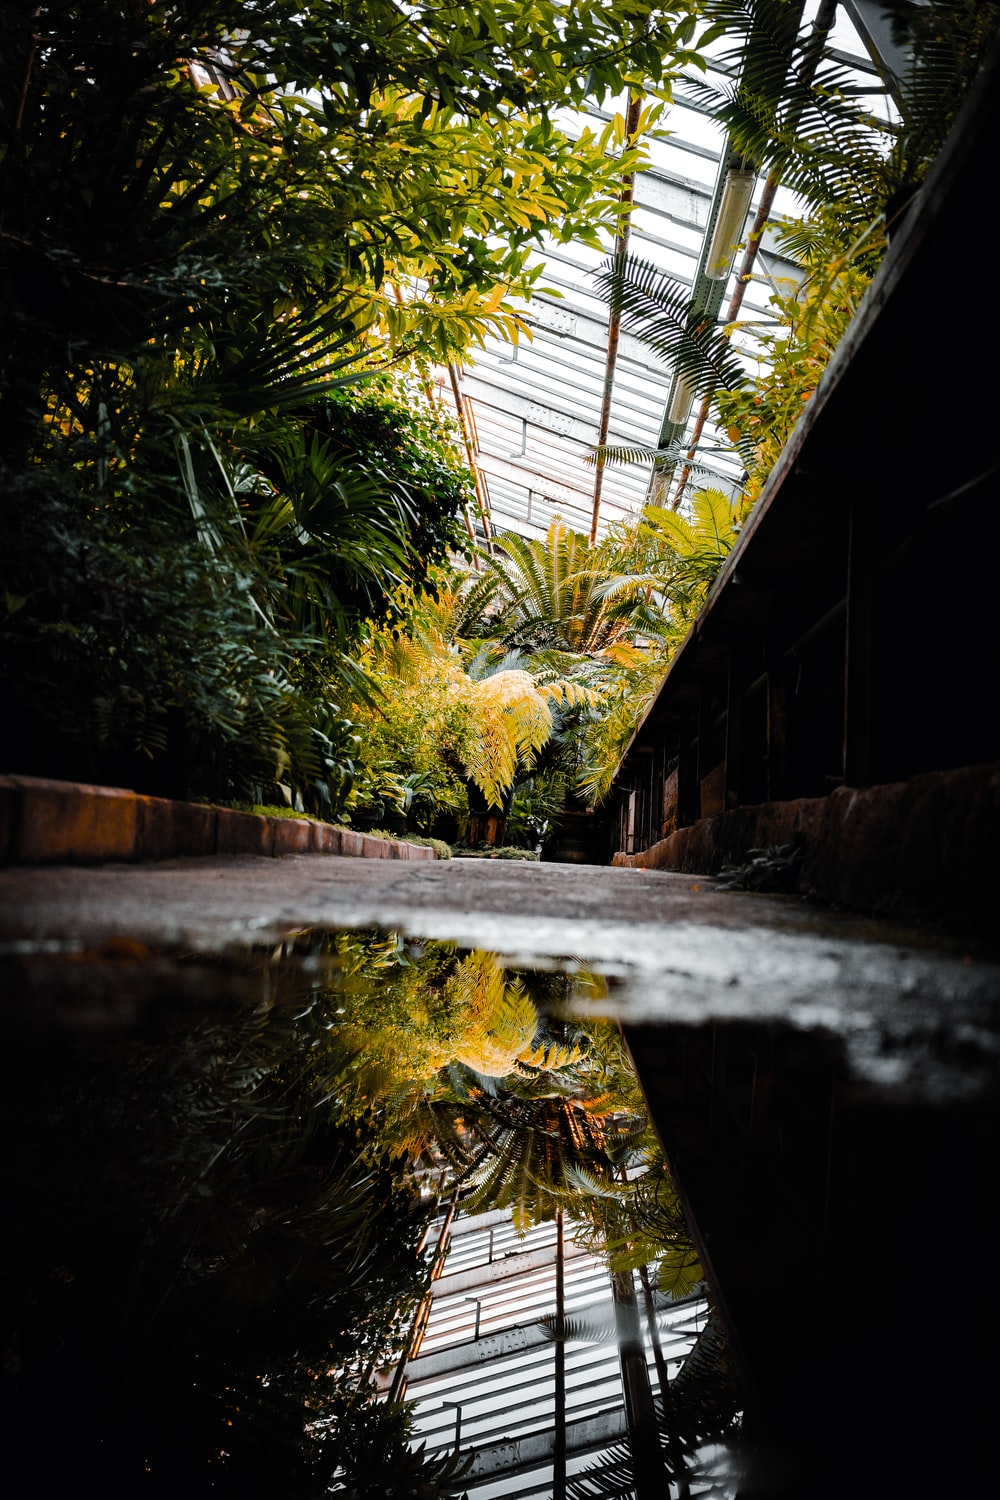 reflection of plants on water on ground inside greenhouse